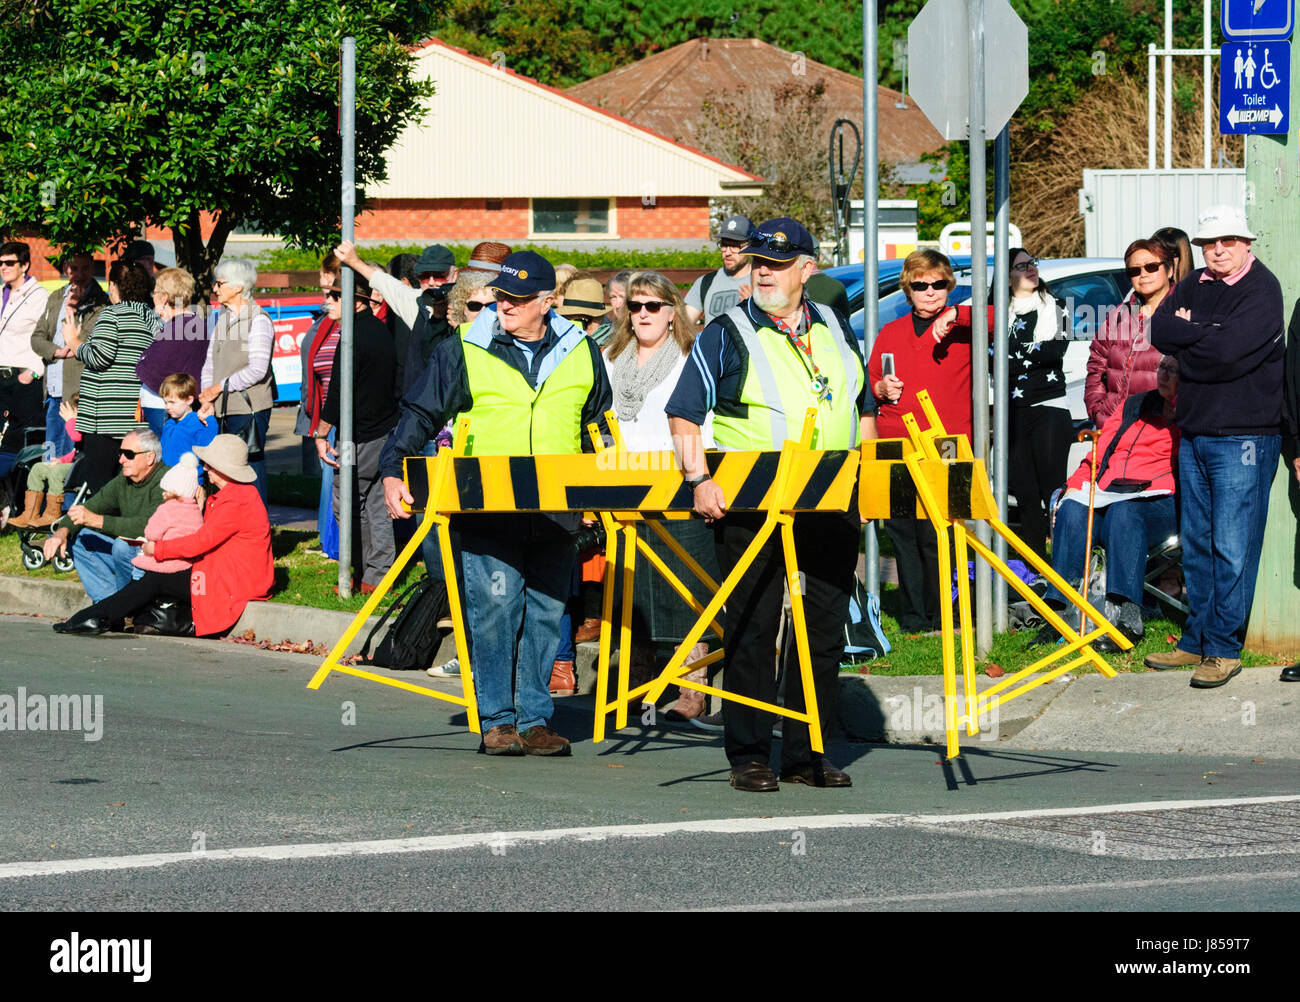 Crowd control operatives wearing hi vis jackets closing off the street during a festival, Berry, New South Wales, - Stock Image